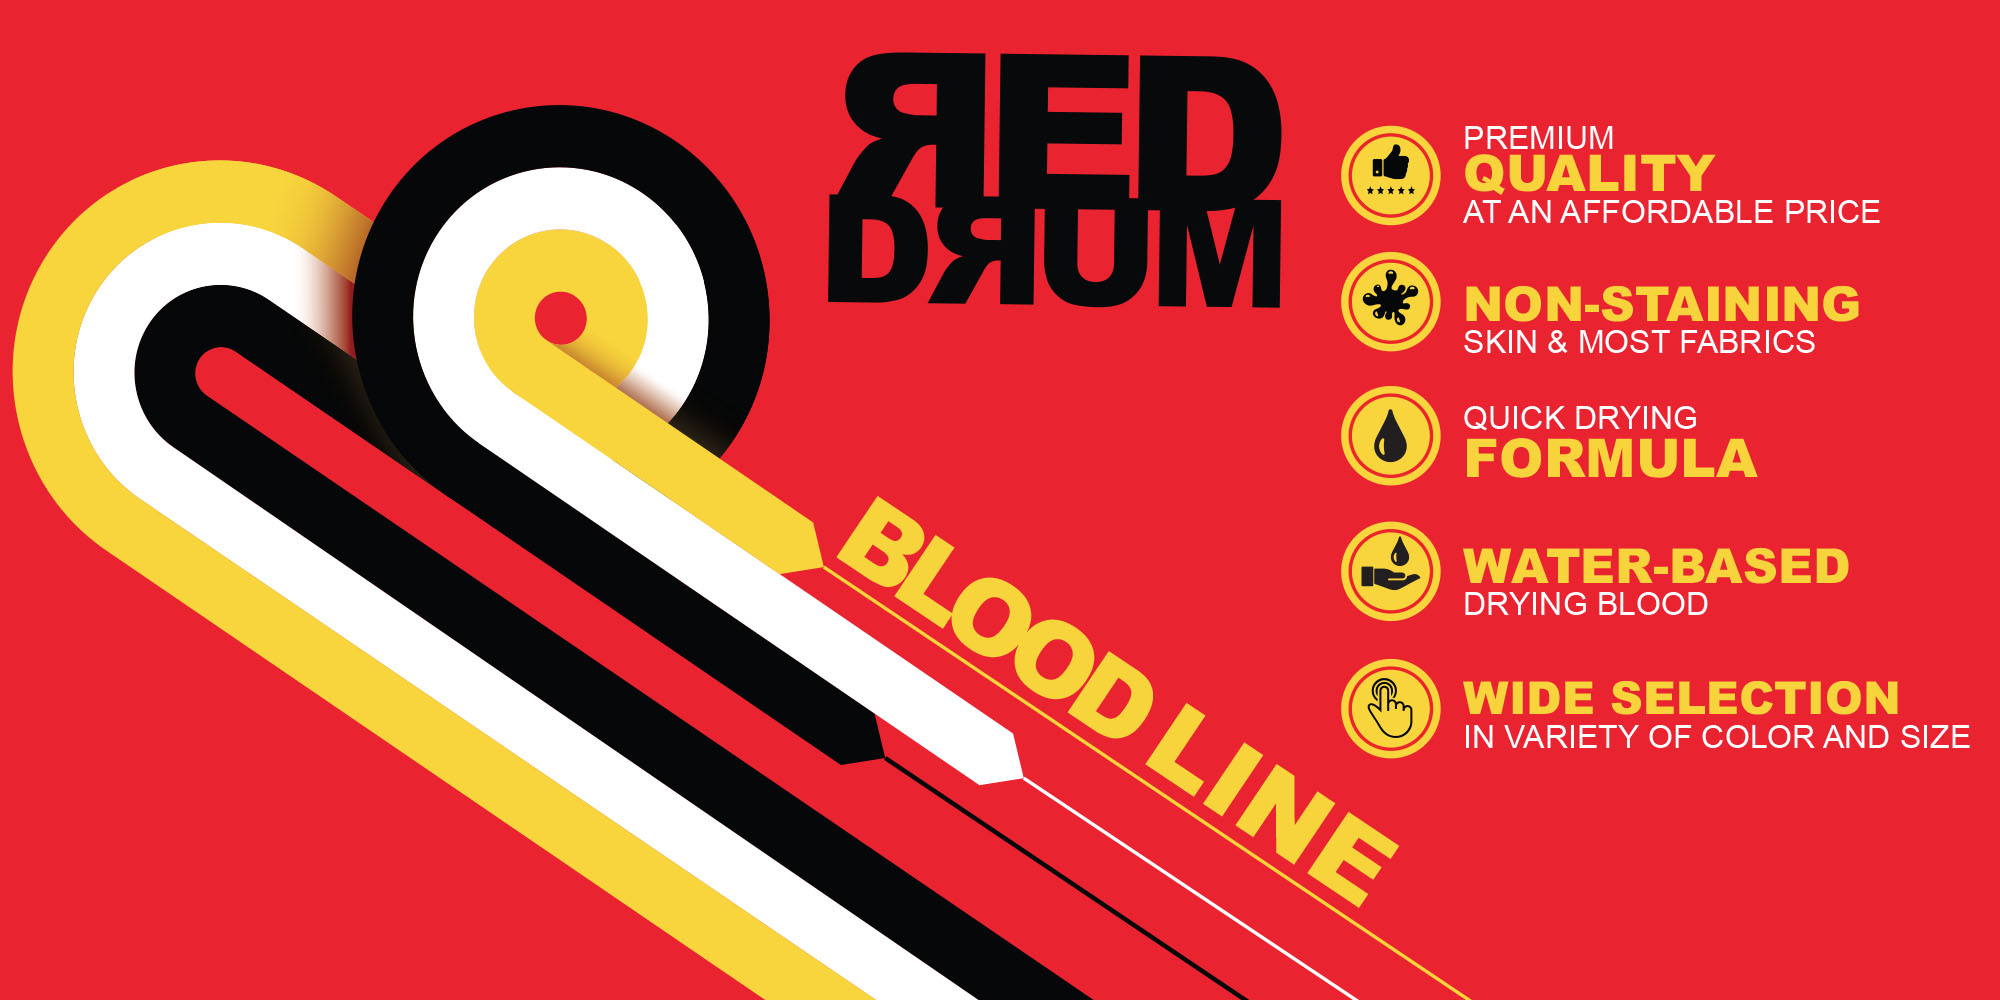 Red Drum Theatrical Blood complete line